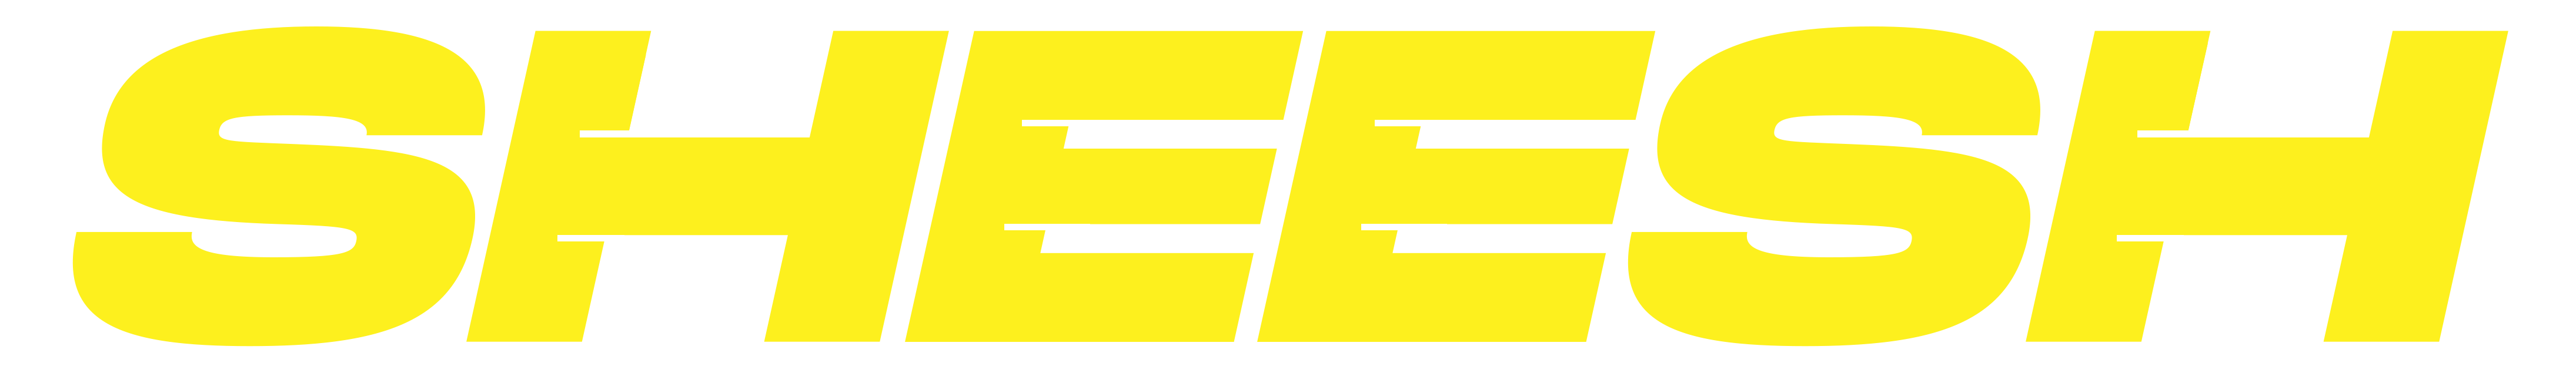 Sheesh Media banner logo yellow